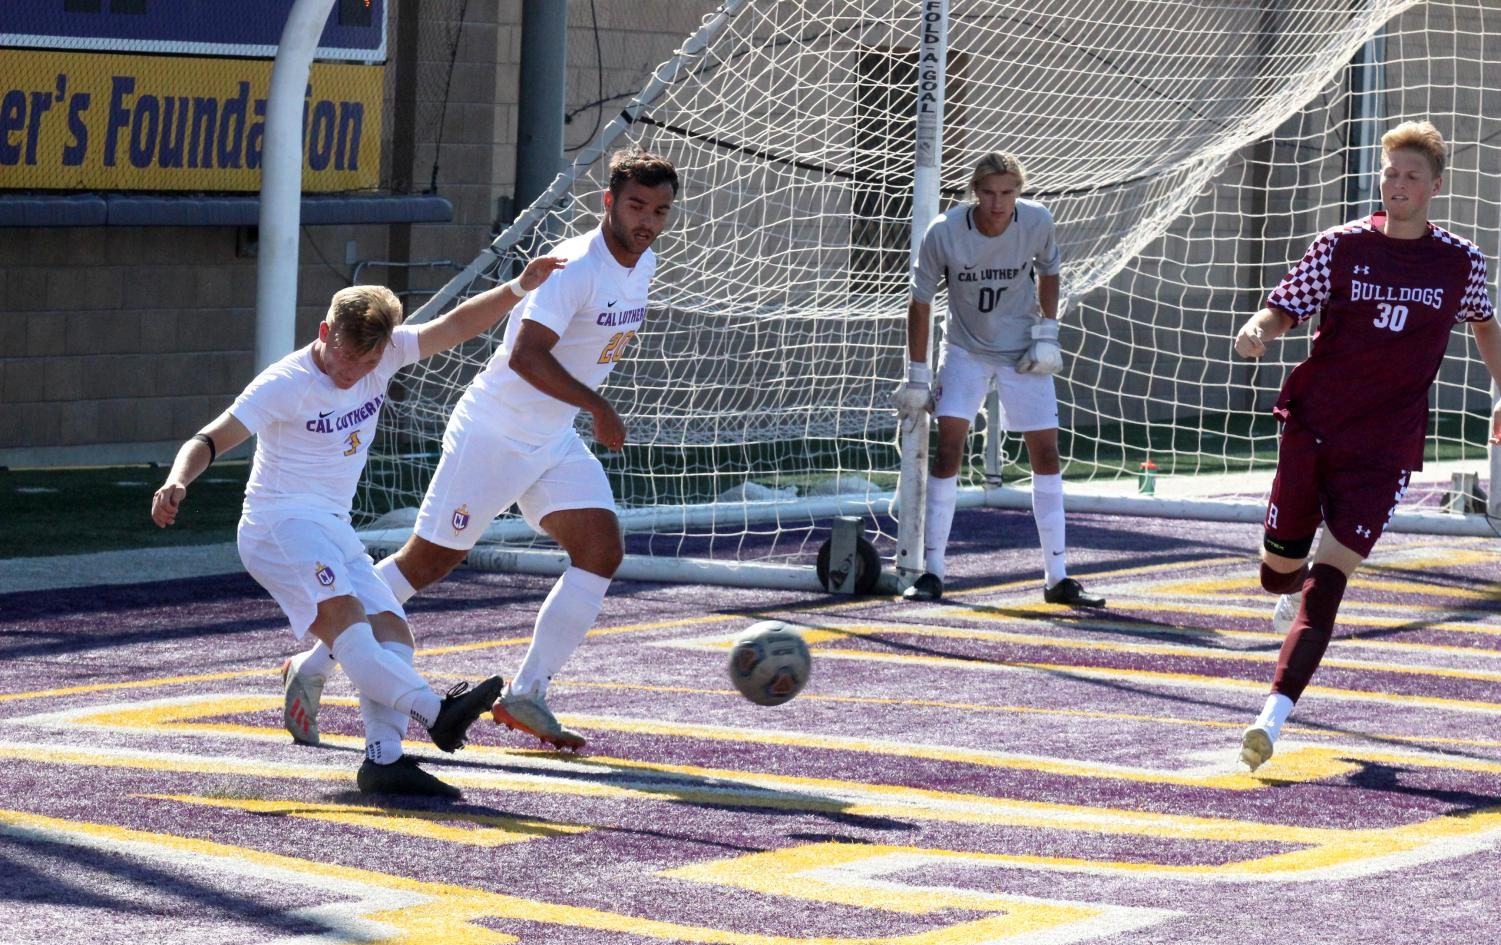 First-year forward Matt Myers (left) and junior defender Lucca Rodrigues (middle) work to kick the ball out of the defensive zone, assisting sophomore goalkeeper Owen Ebner (right).